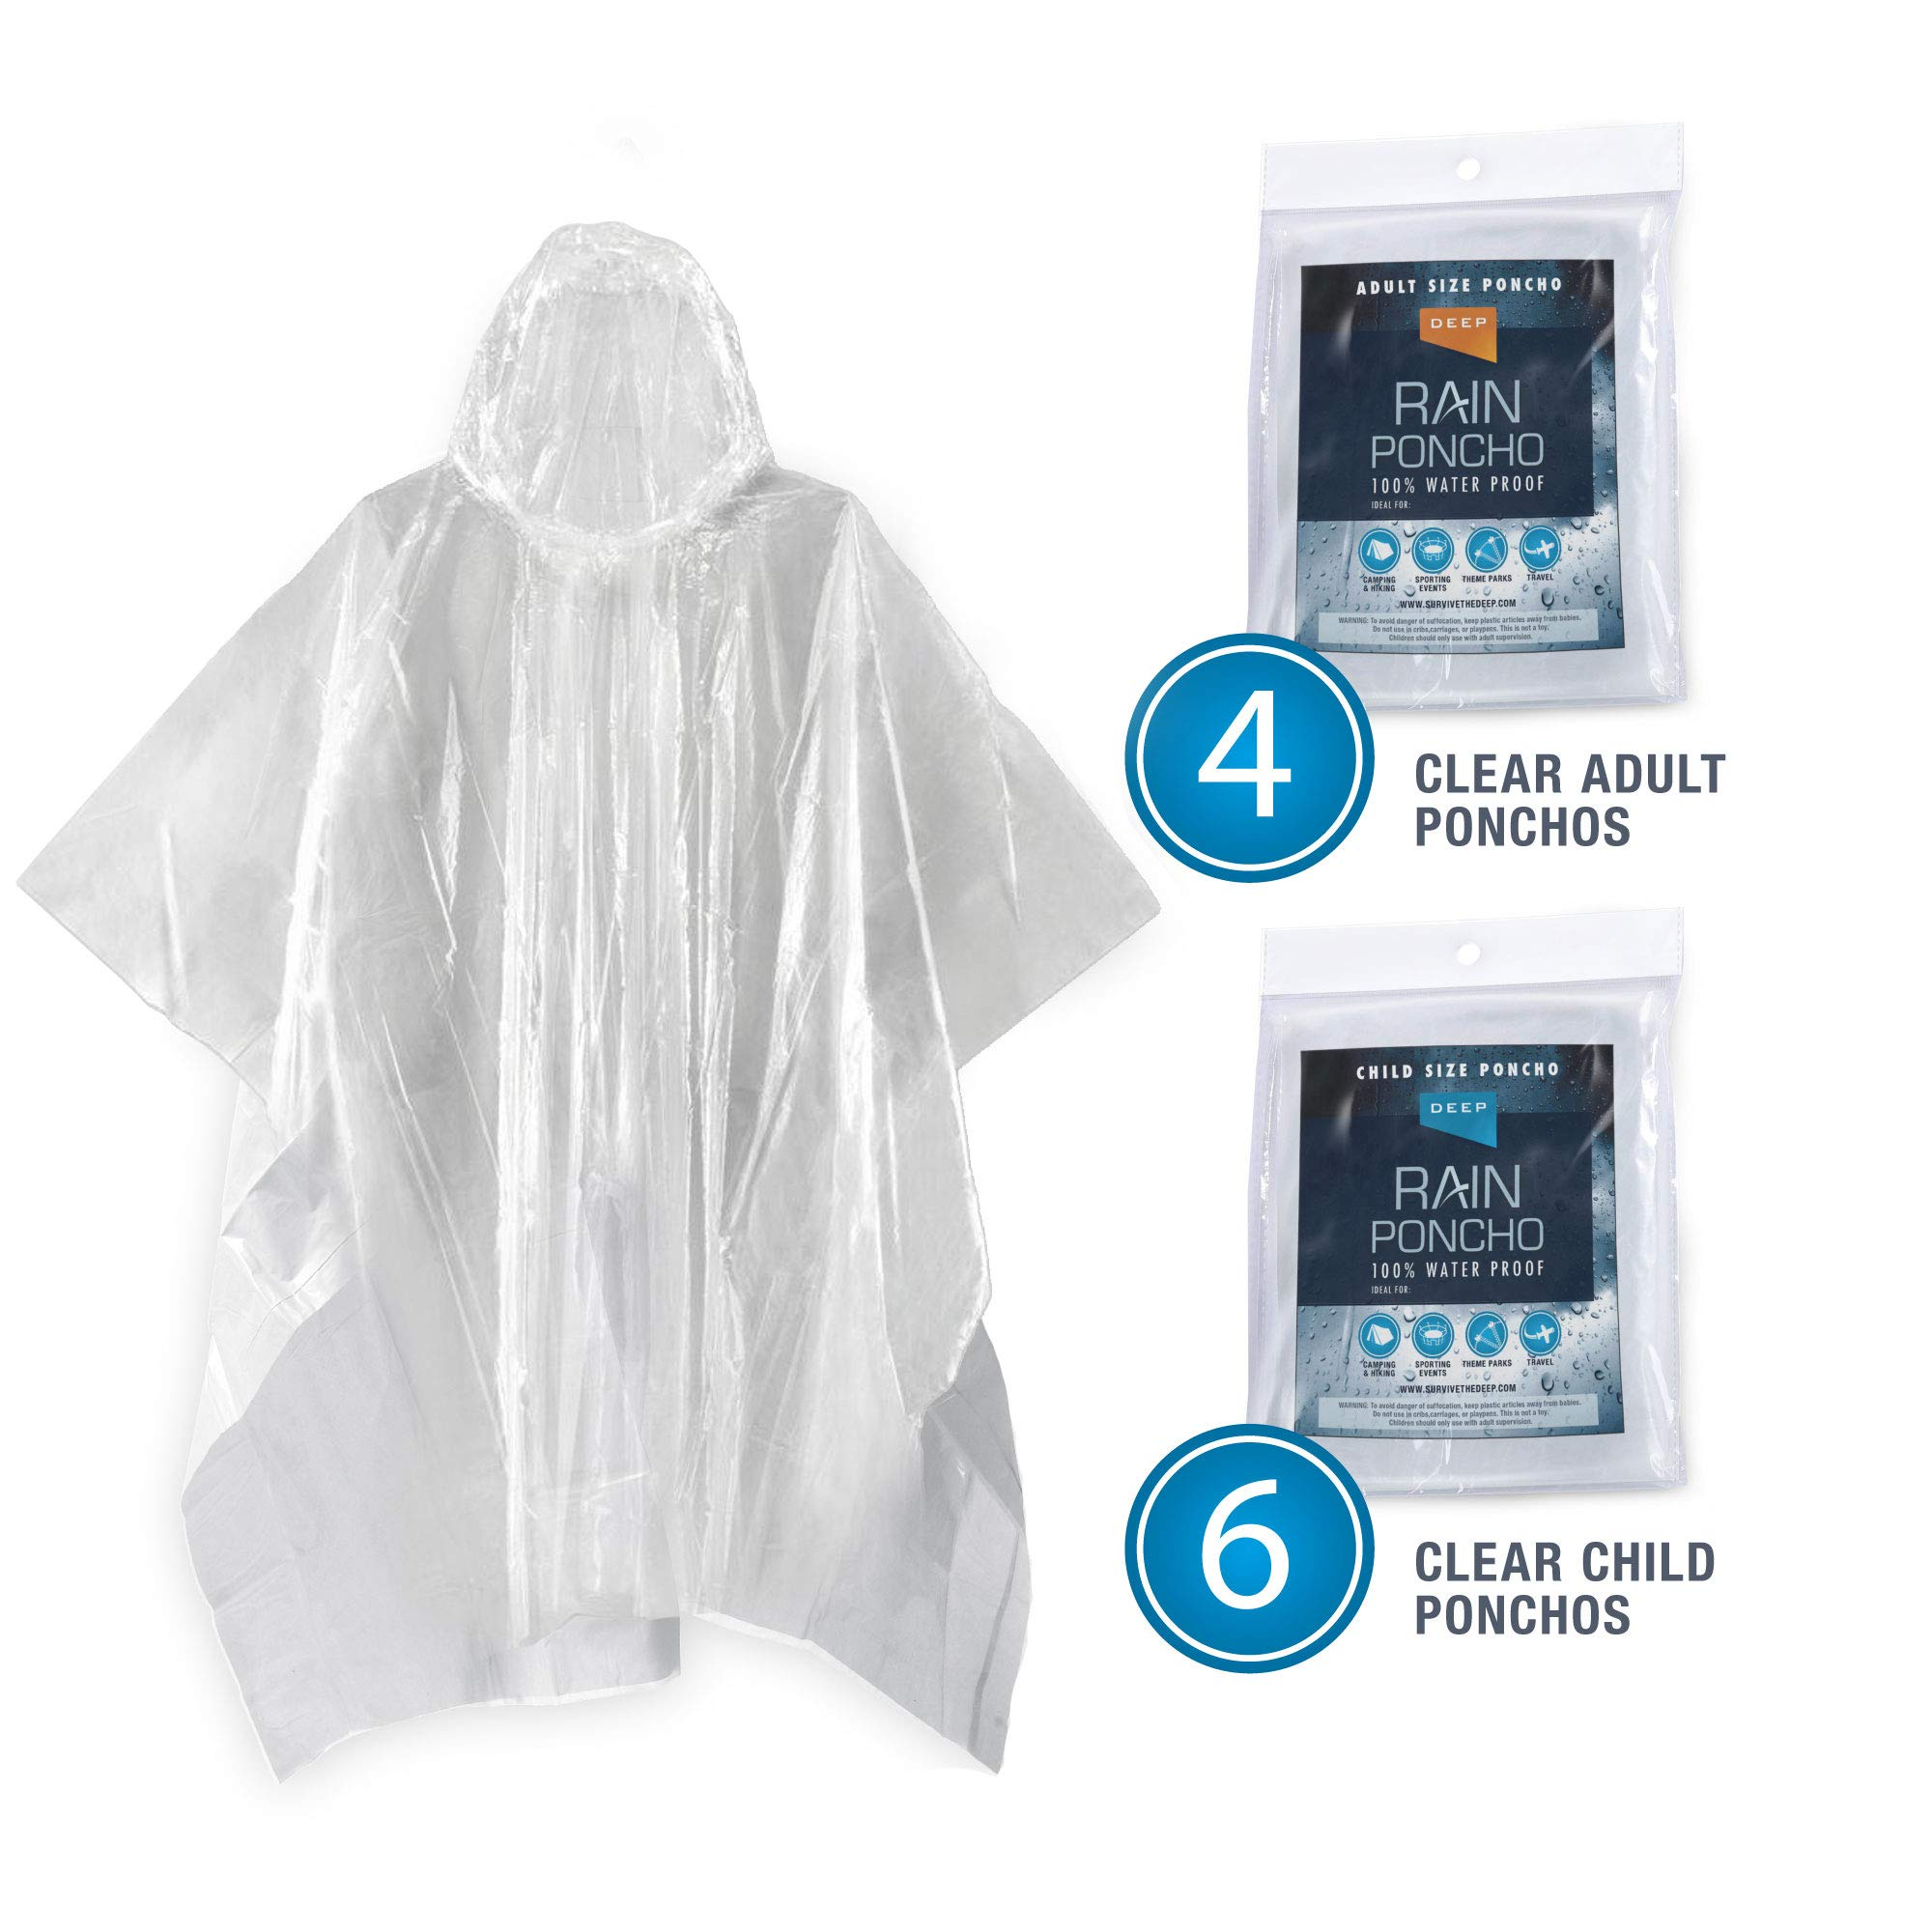 Deep Rain Poncho, Multi-Use Disposable Waterproof Emergency Jacket | Buy 8 get 2 Free! Clear Family Pack for Adult Women, Men and Kids